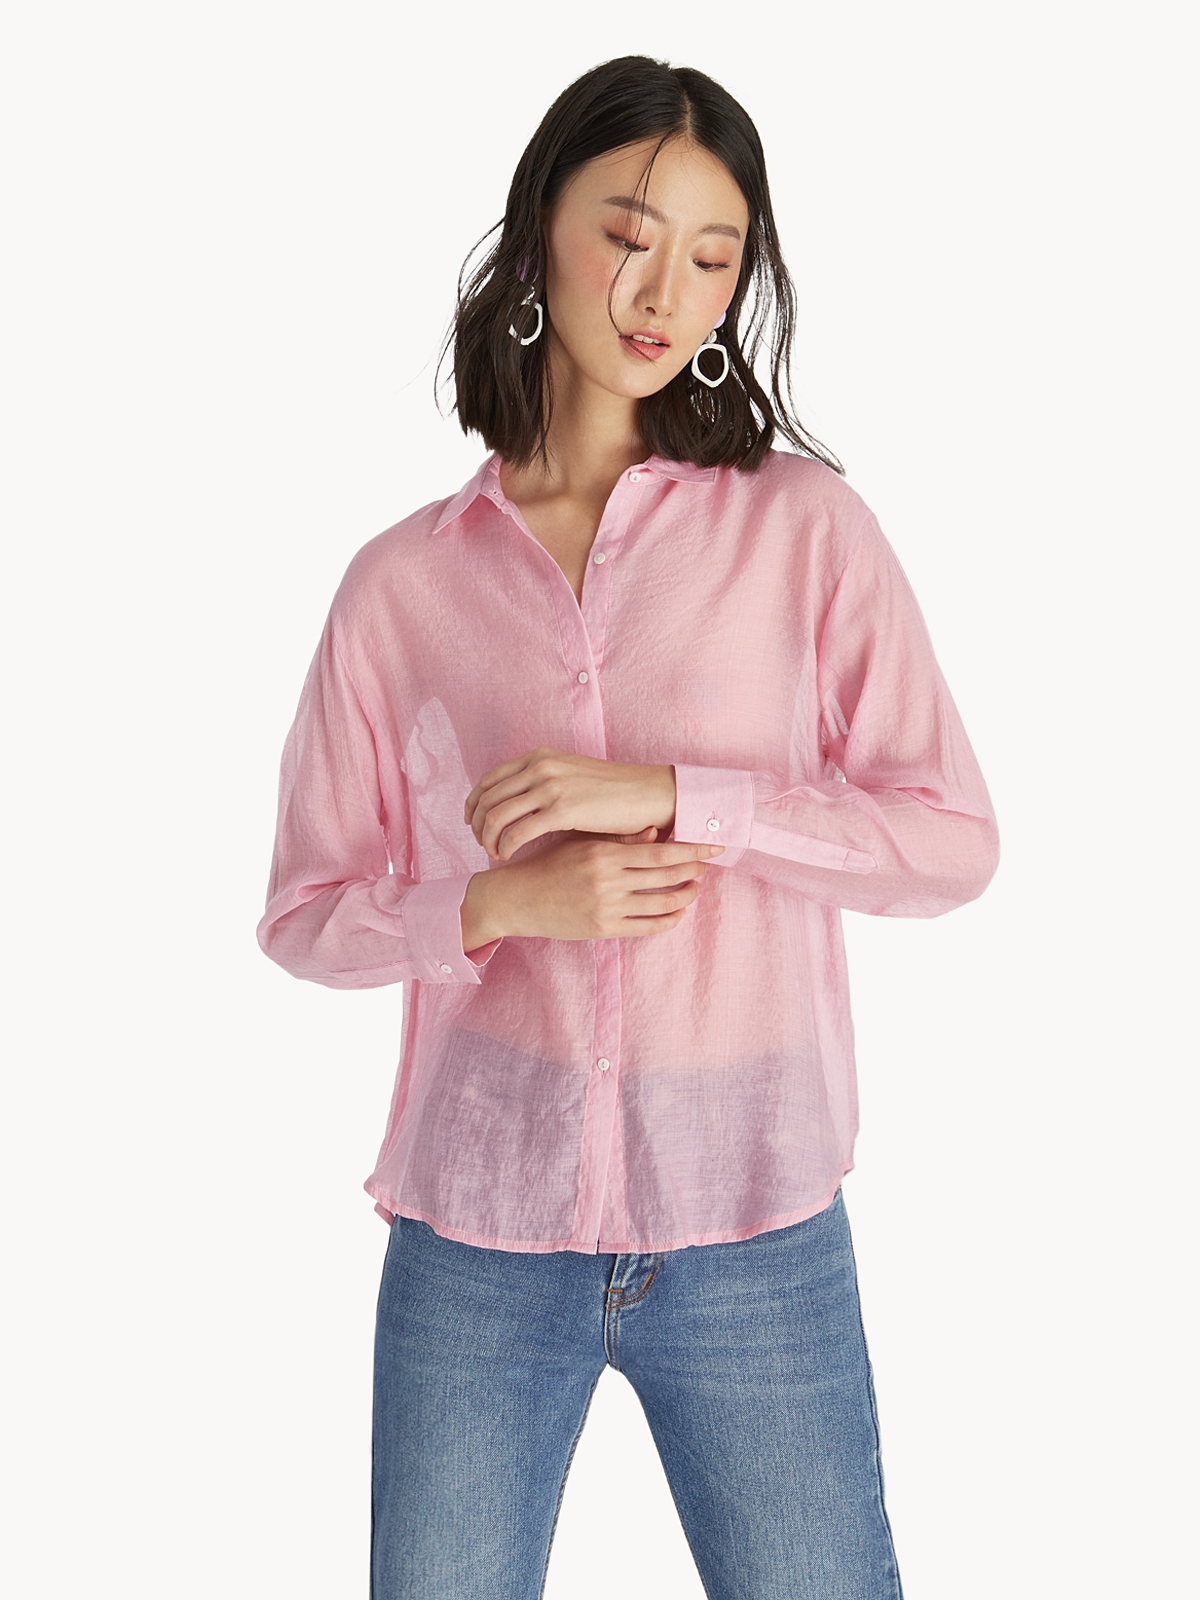 ca7a6b1c1 Buttoned Up Collar Shirt - Pink - Pomelo Fashion